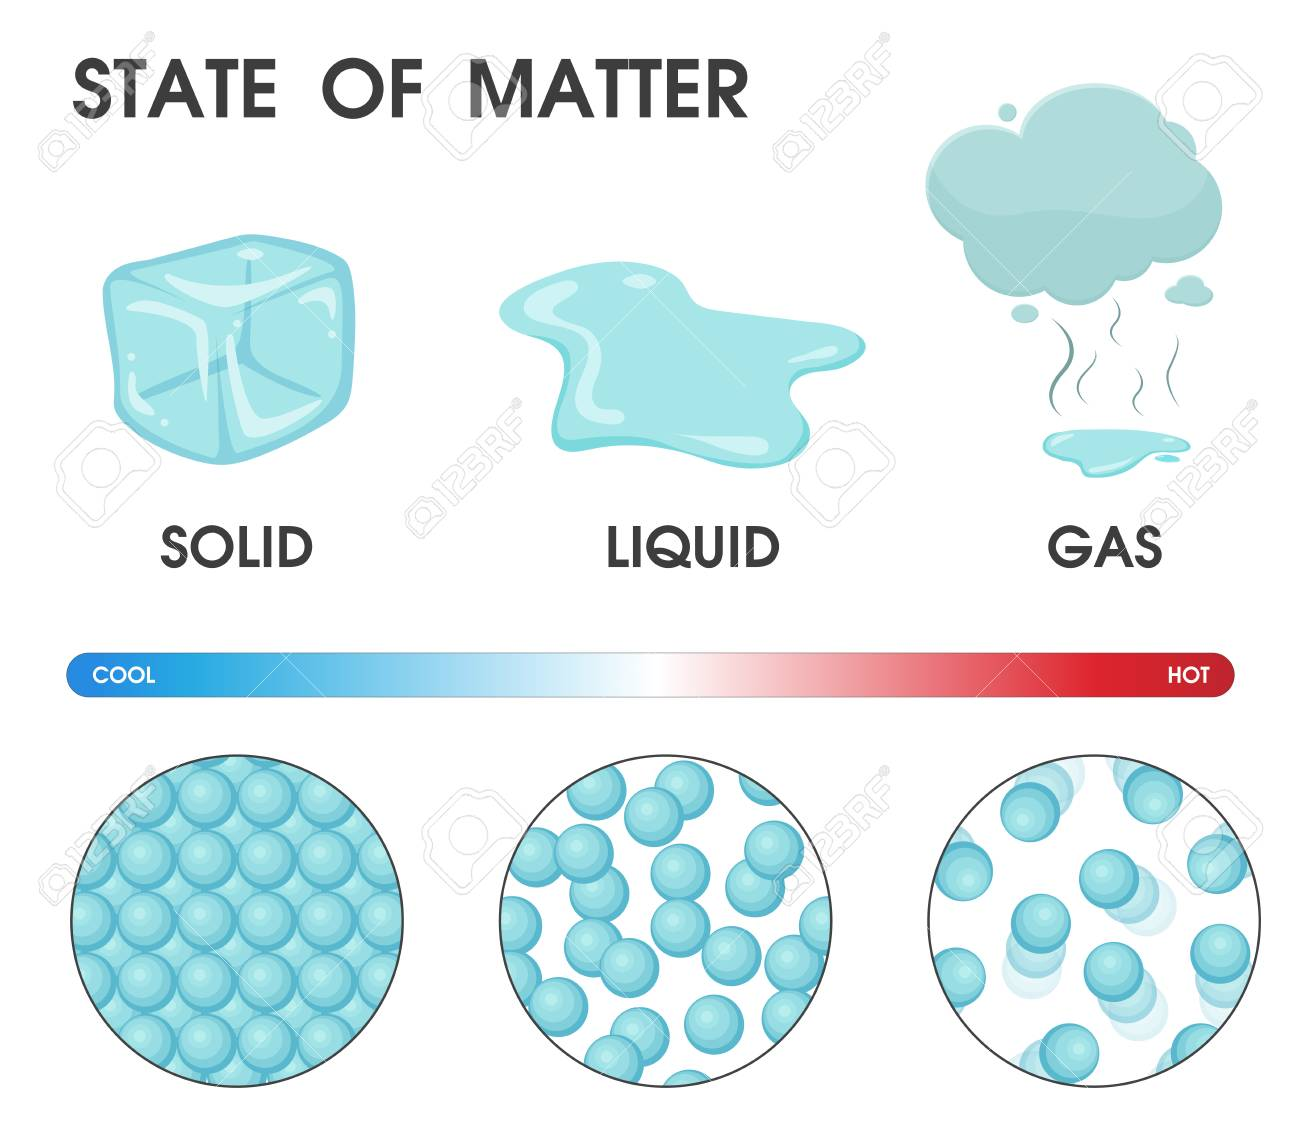 Changing the state of matter from solid, liquid and gas due to temperature. Vector Illustration. - 115192393